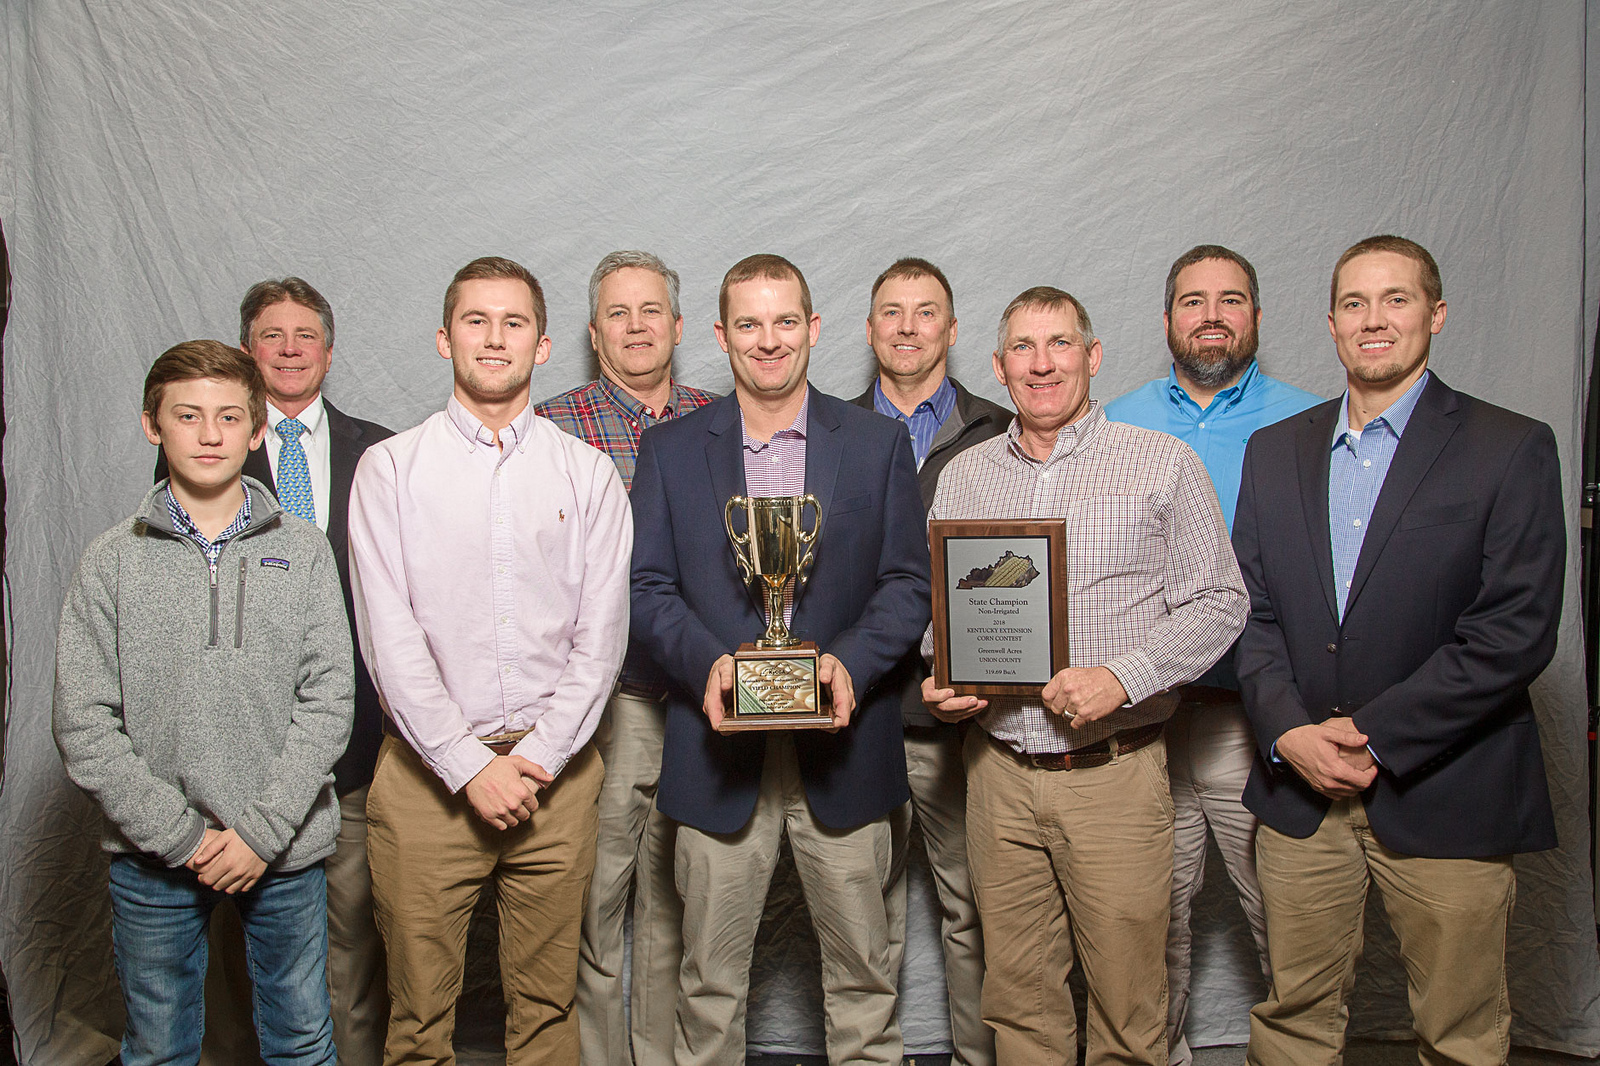 Greenwell Acres will be honored again this year at the Kentucky Commodity Conference on January 17 along with the other winners listed below.